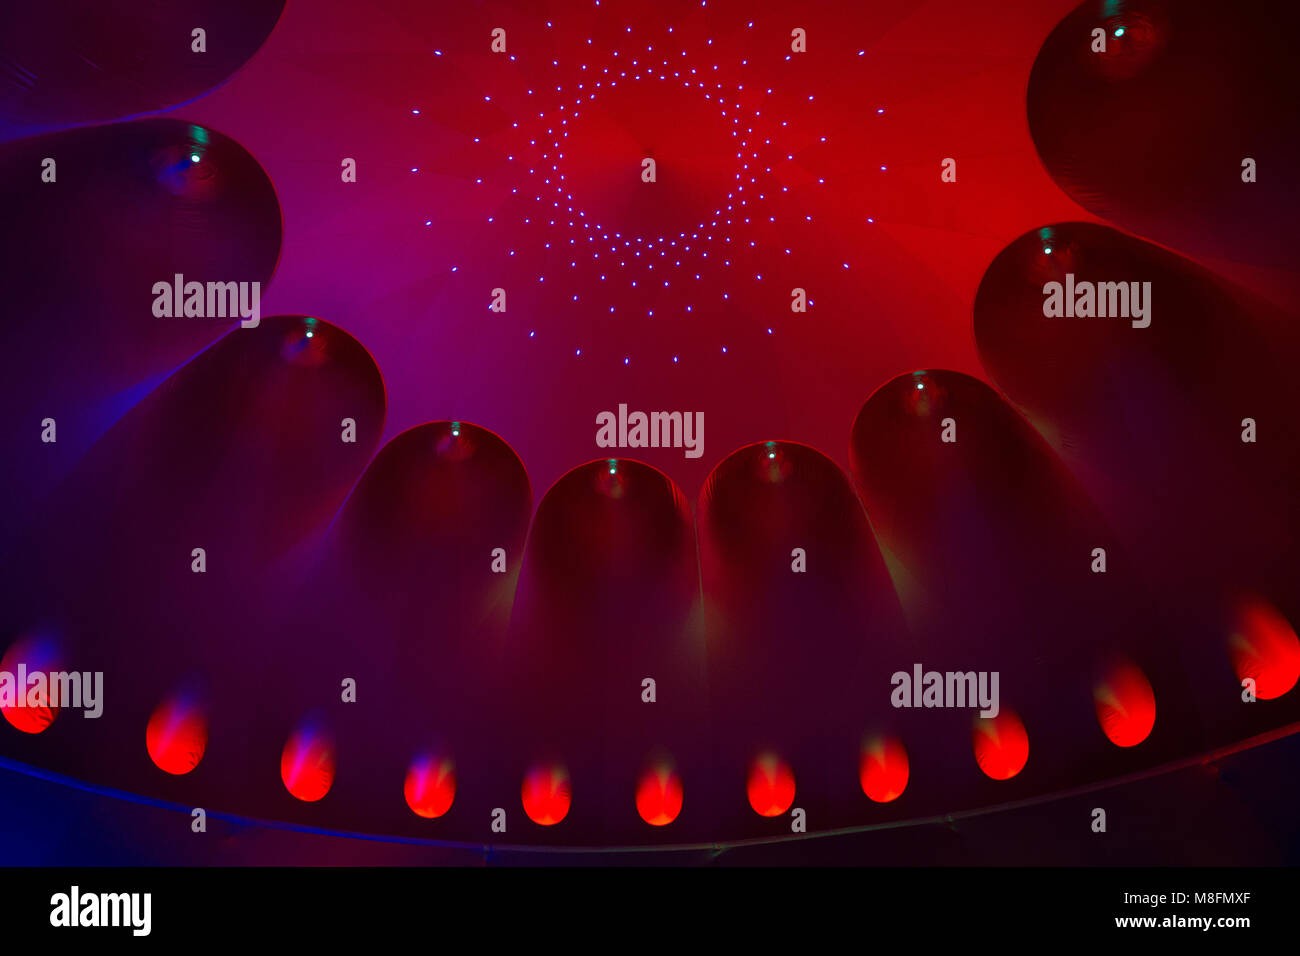 Artistic installation 'Architects of air' on 'Spancirfest' festival in town Varazdin, Croatia - Stock Image